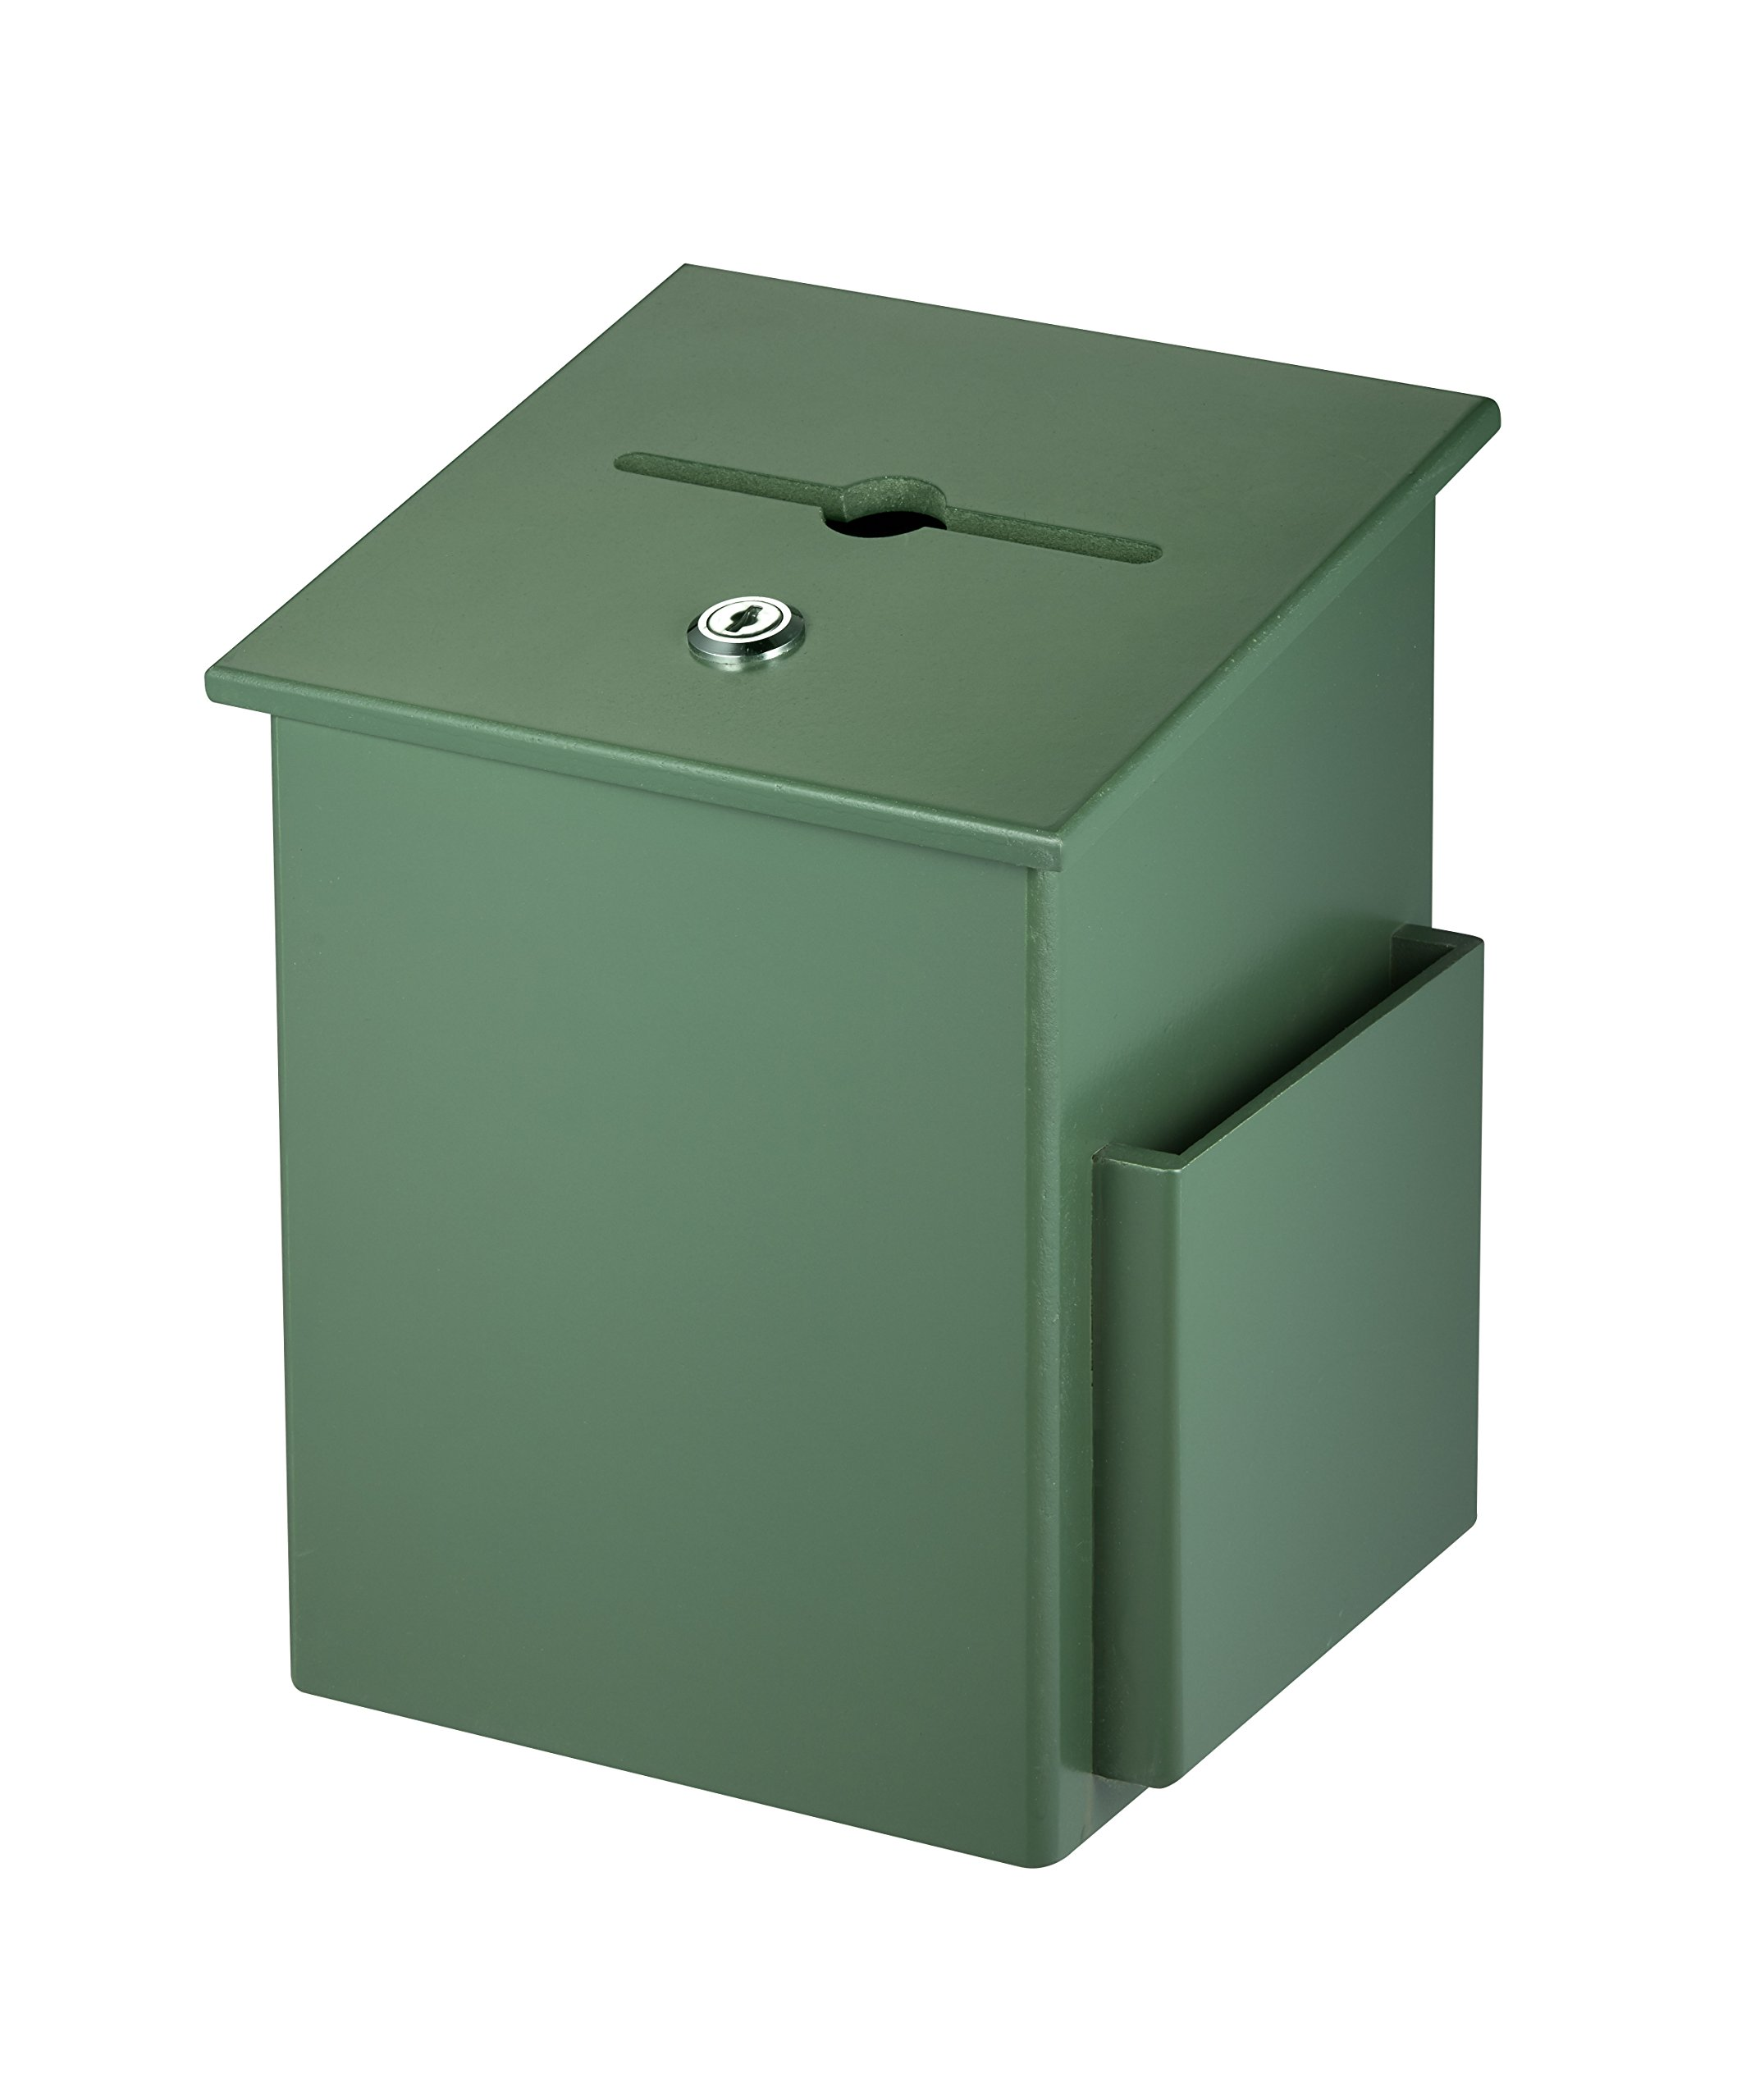 AdirOffice Square Wood Suggestion Box - Wall Mountable - with Lock & Chained Pen - Donation, Collection, Ballot, Key Drop, (Green)